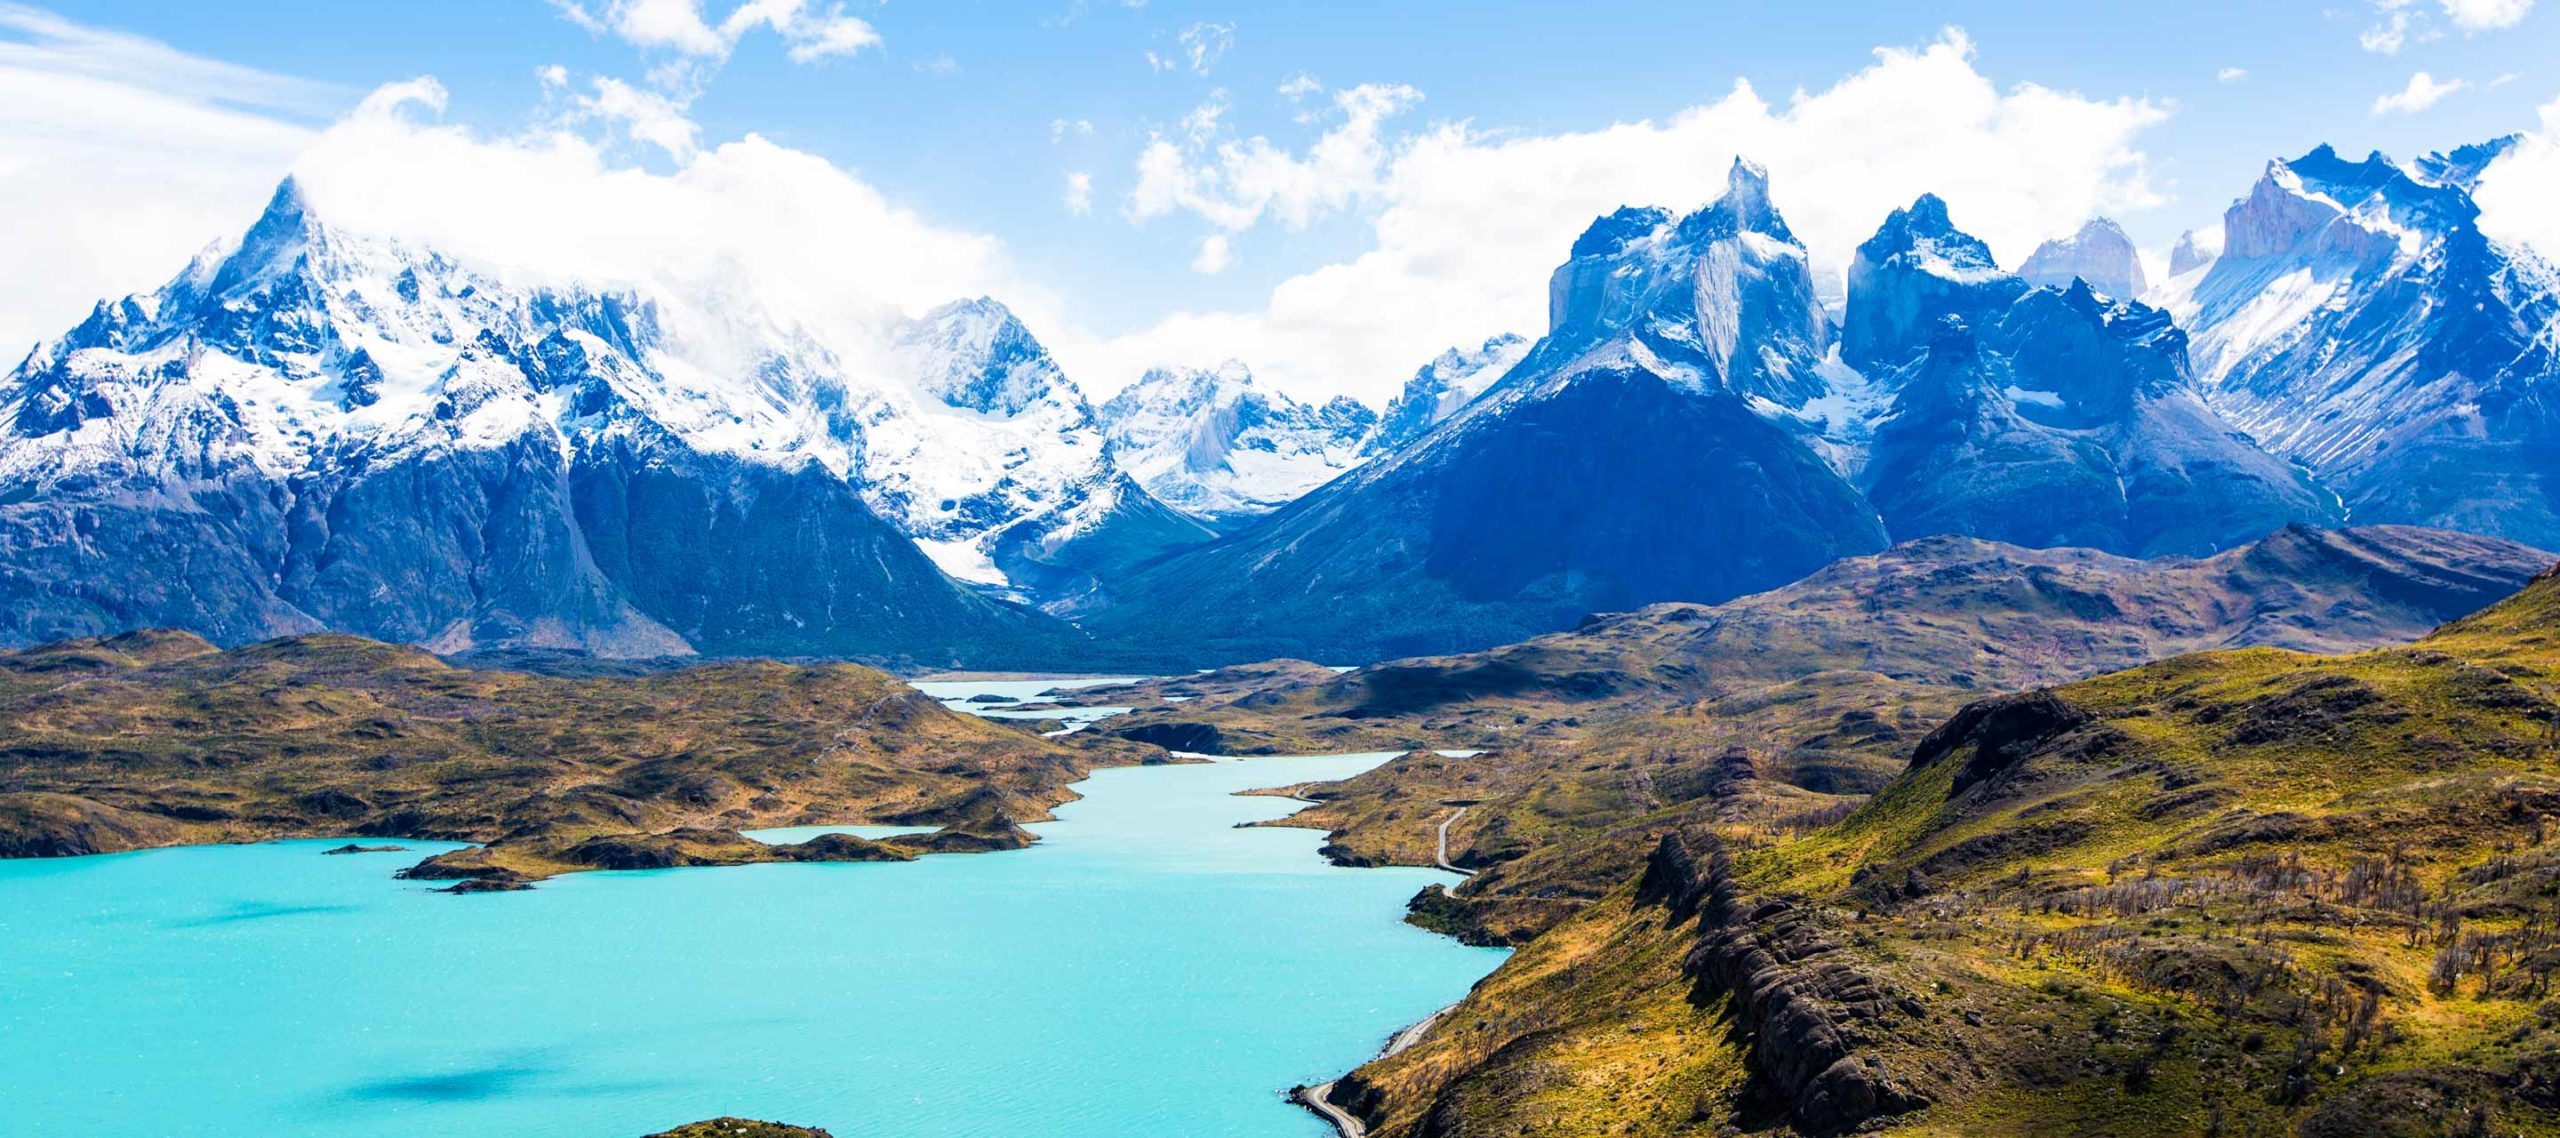 Views of mountain lake and impressive mountains during Torres del Paine Tours